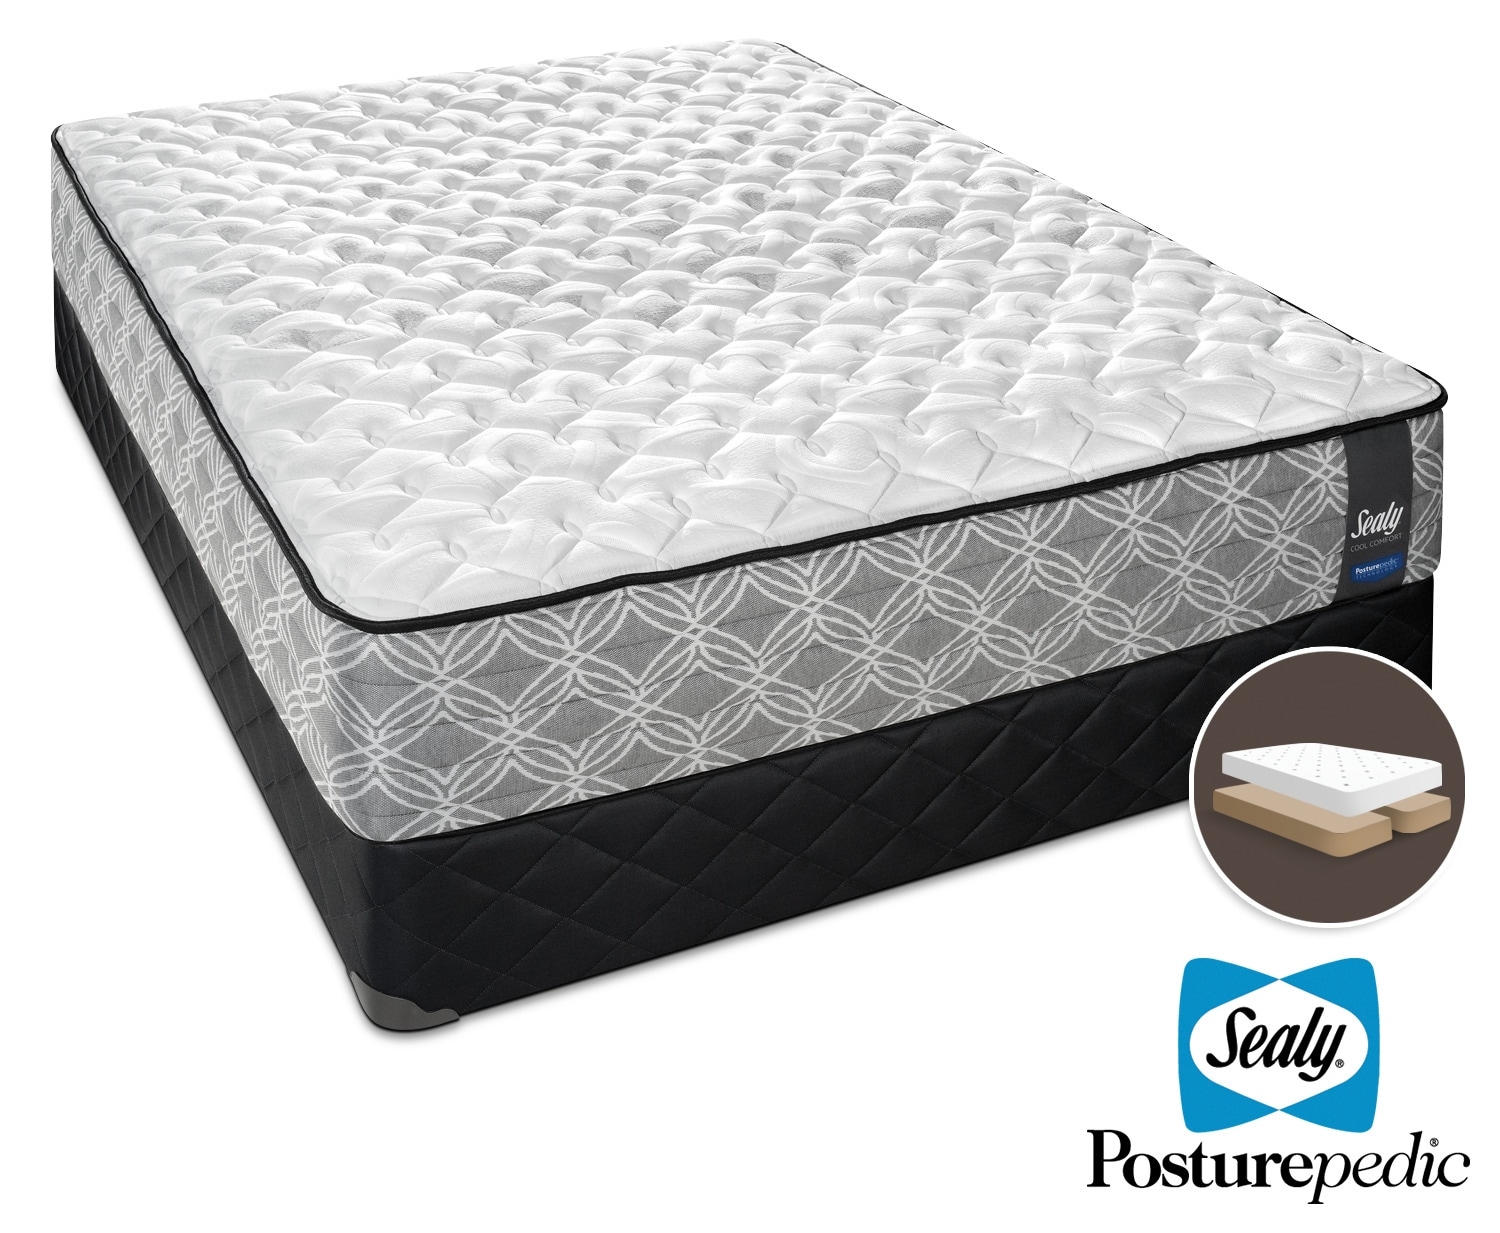 Sealy Moonbeam Firm King Mattress and Split Boxspring Set